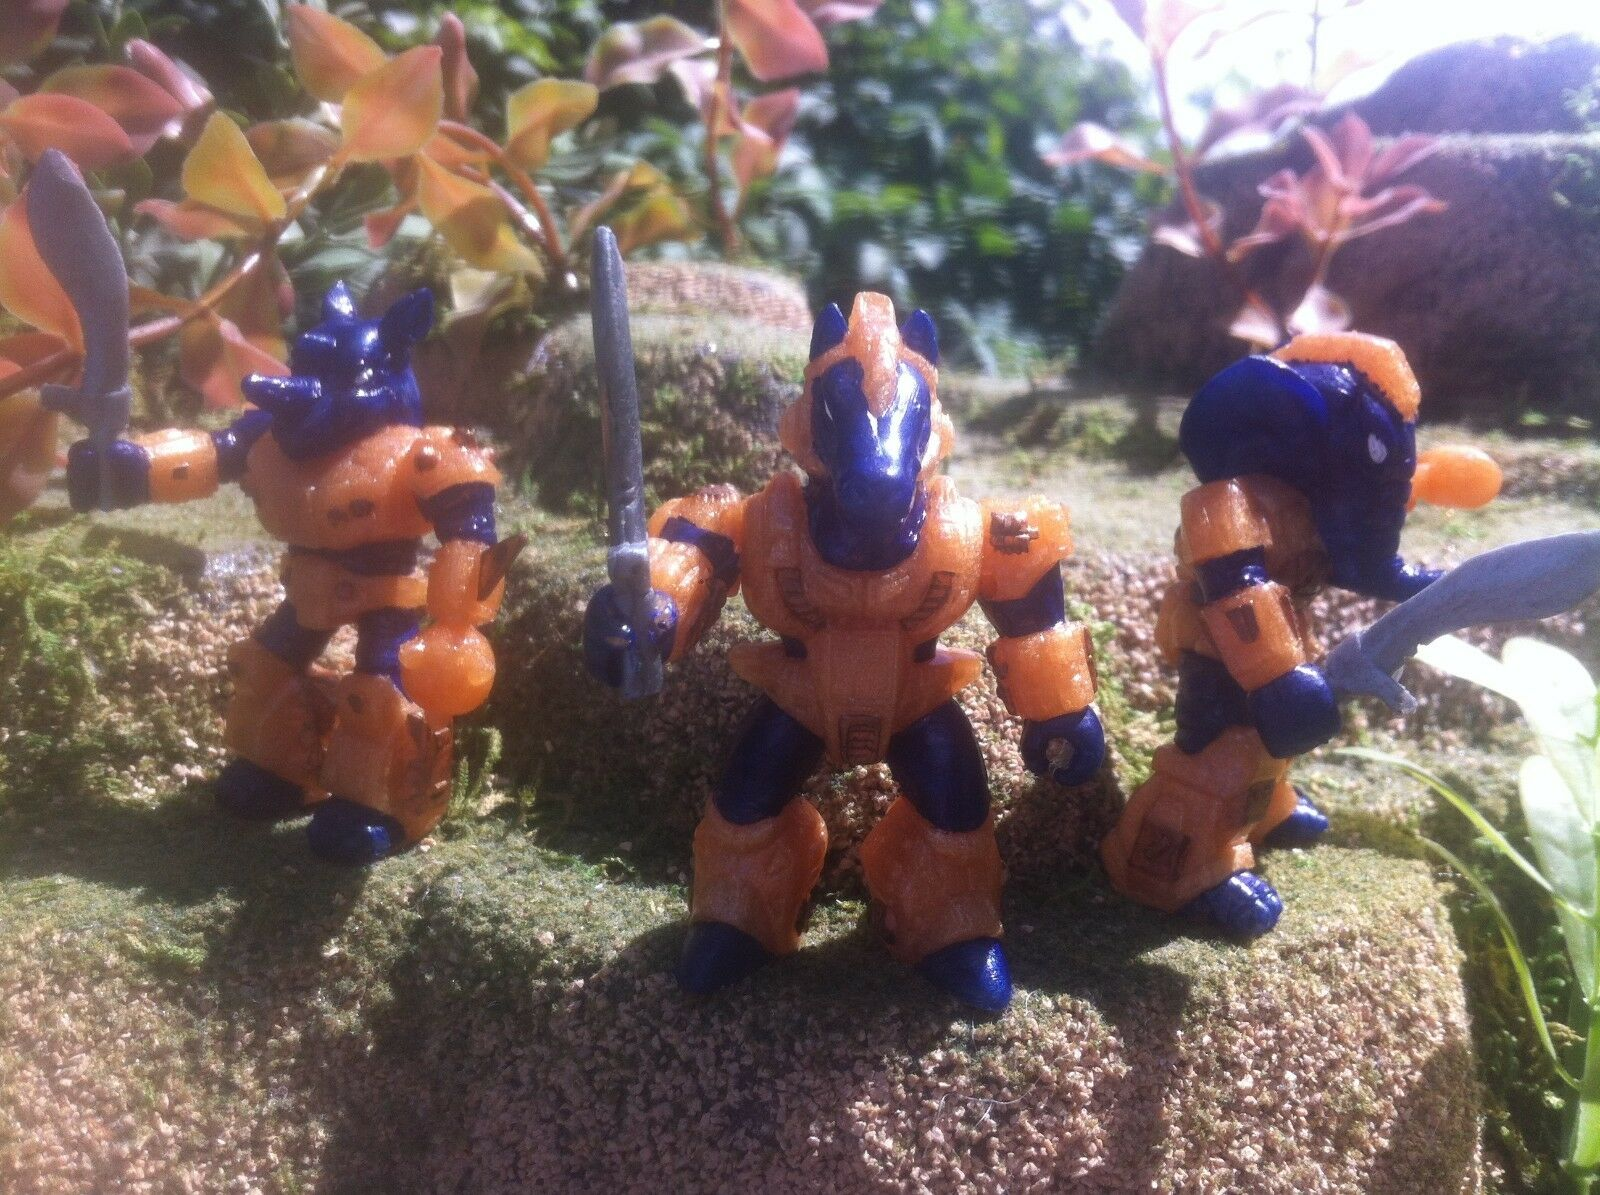 Battle Beasts Laser Beasts Royal Indian Guard Lot of 3 American made